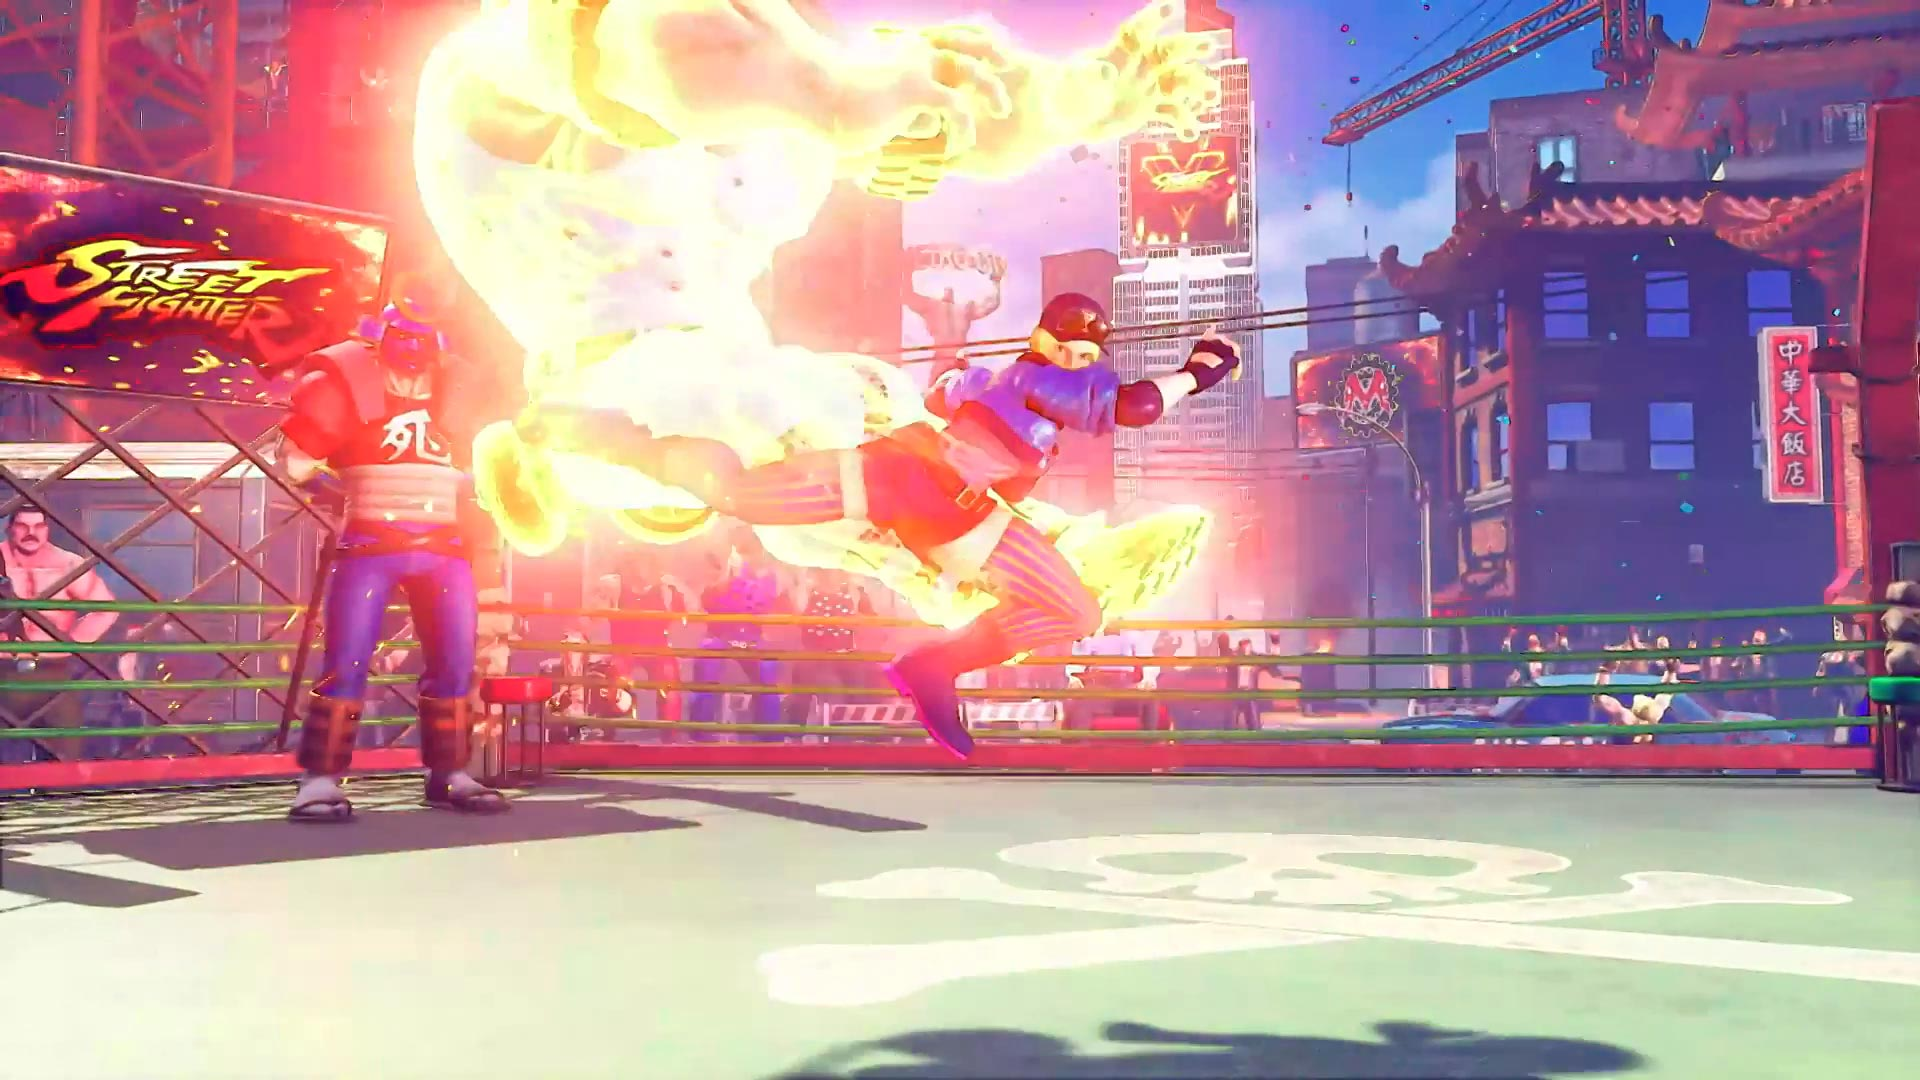 Street Fighter 5 leaked gallery of E. Honda, Lucia and Poison 16 out of 35 image gallery